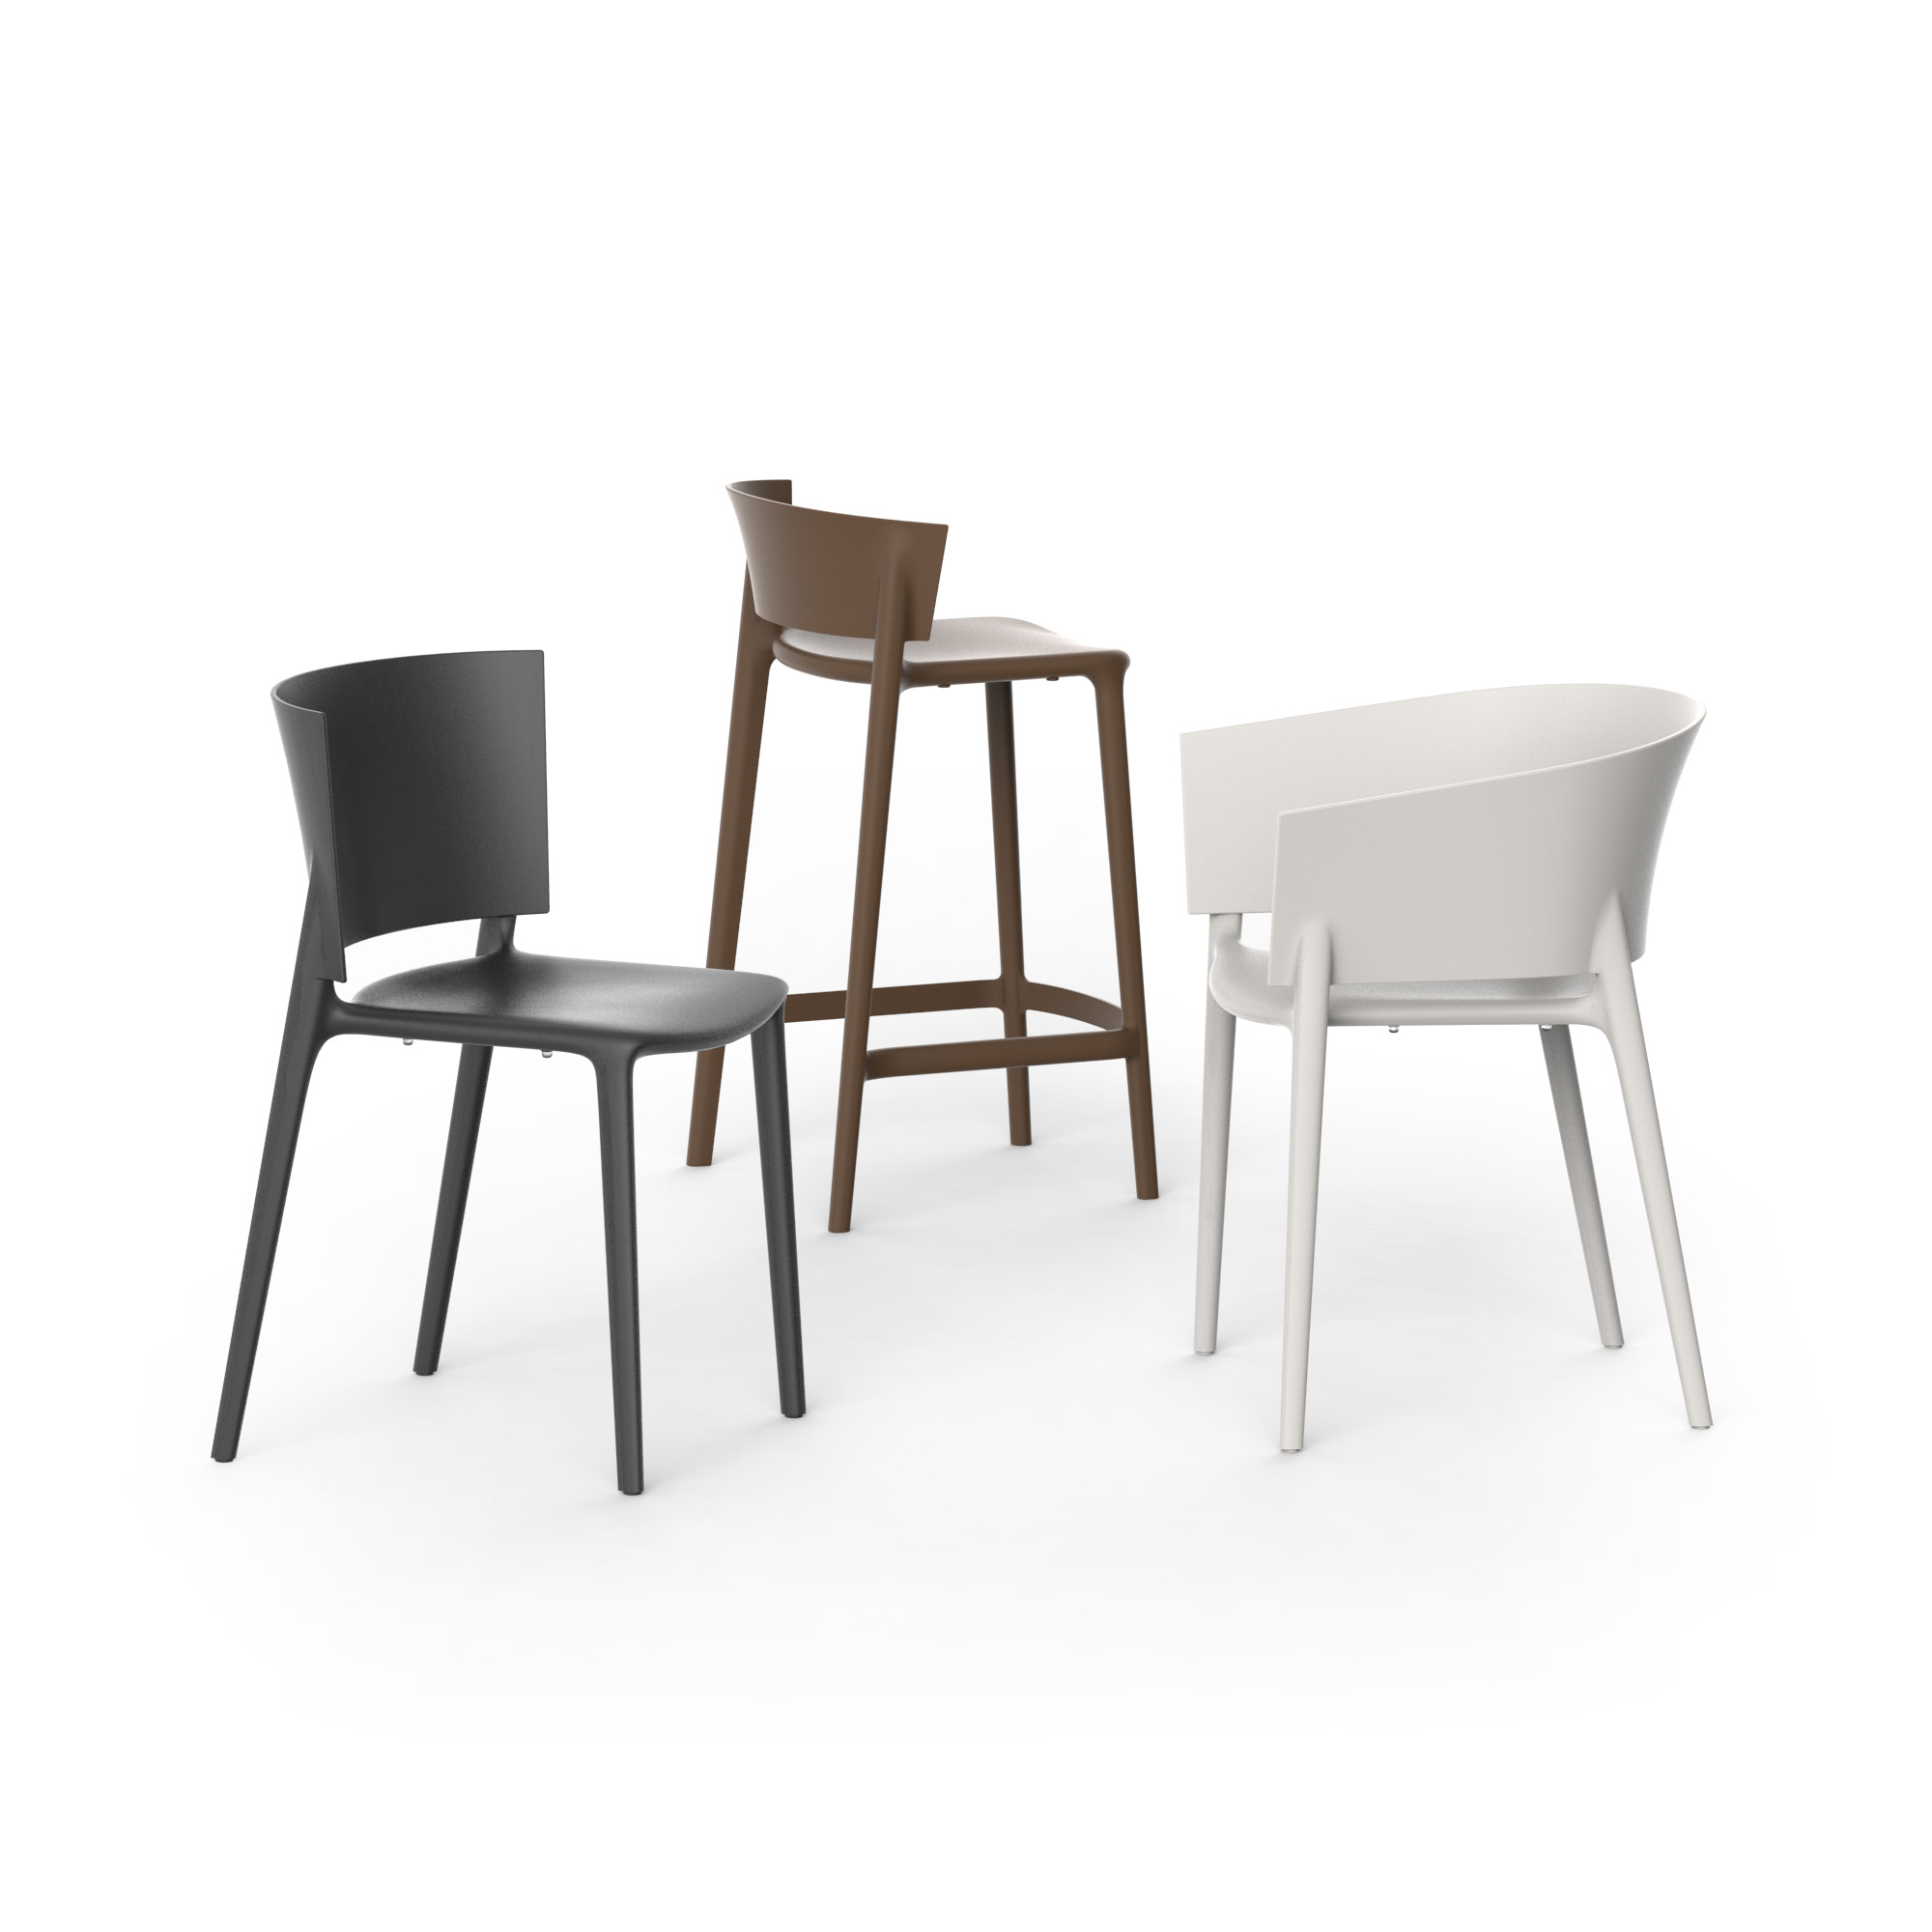 AFRICA CHAIR EUGENI QUITLLET VONDOM OUTDOOR STACKABLE SILLA EXTERIOR DESIGN (2b)